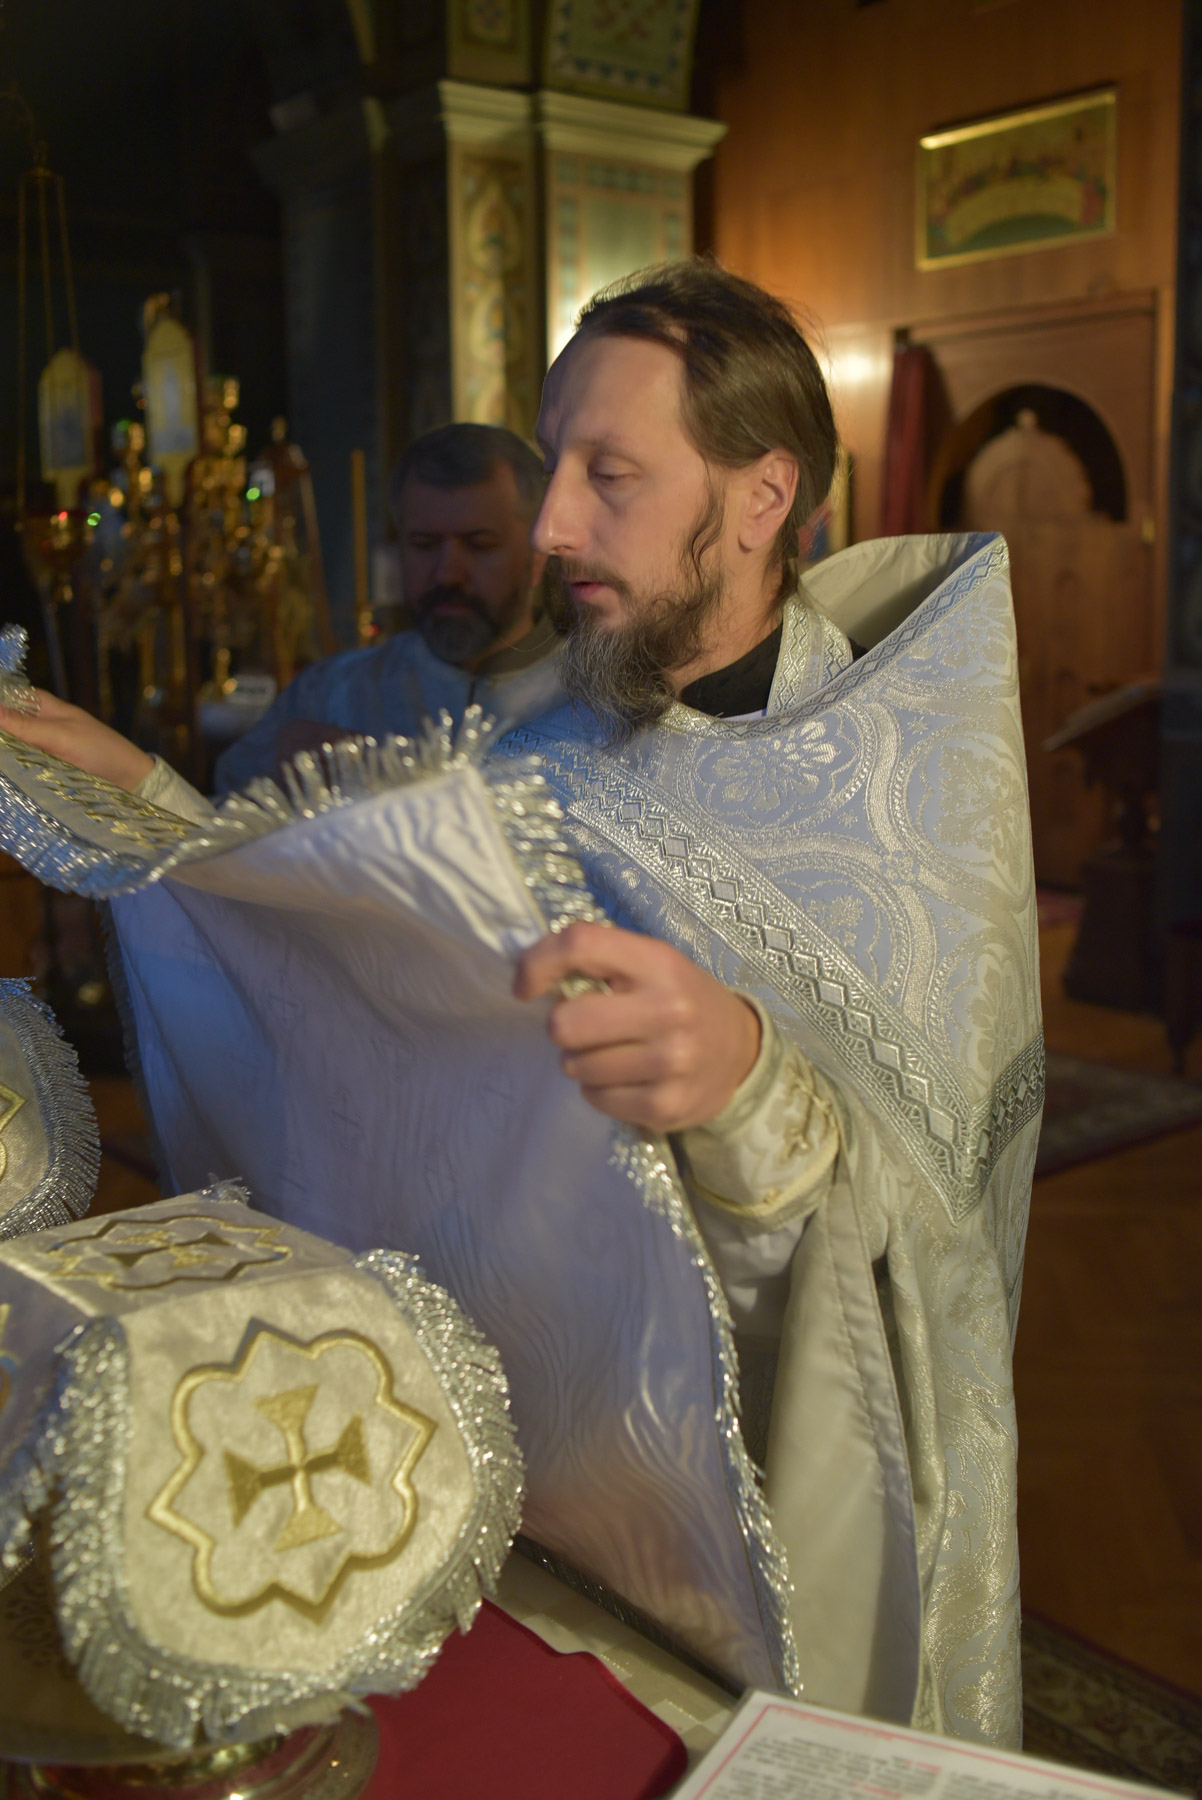 photos of orthodox christmas 0005 1